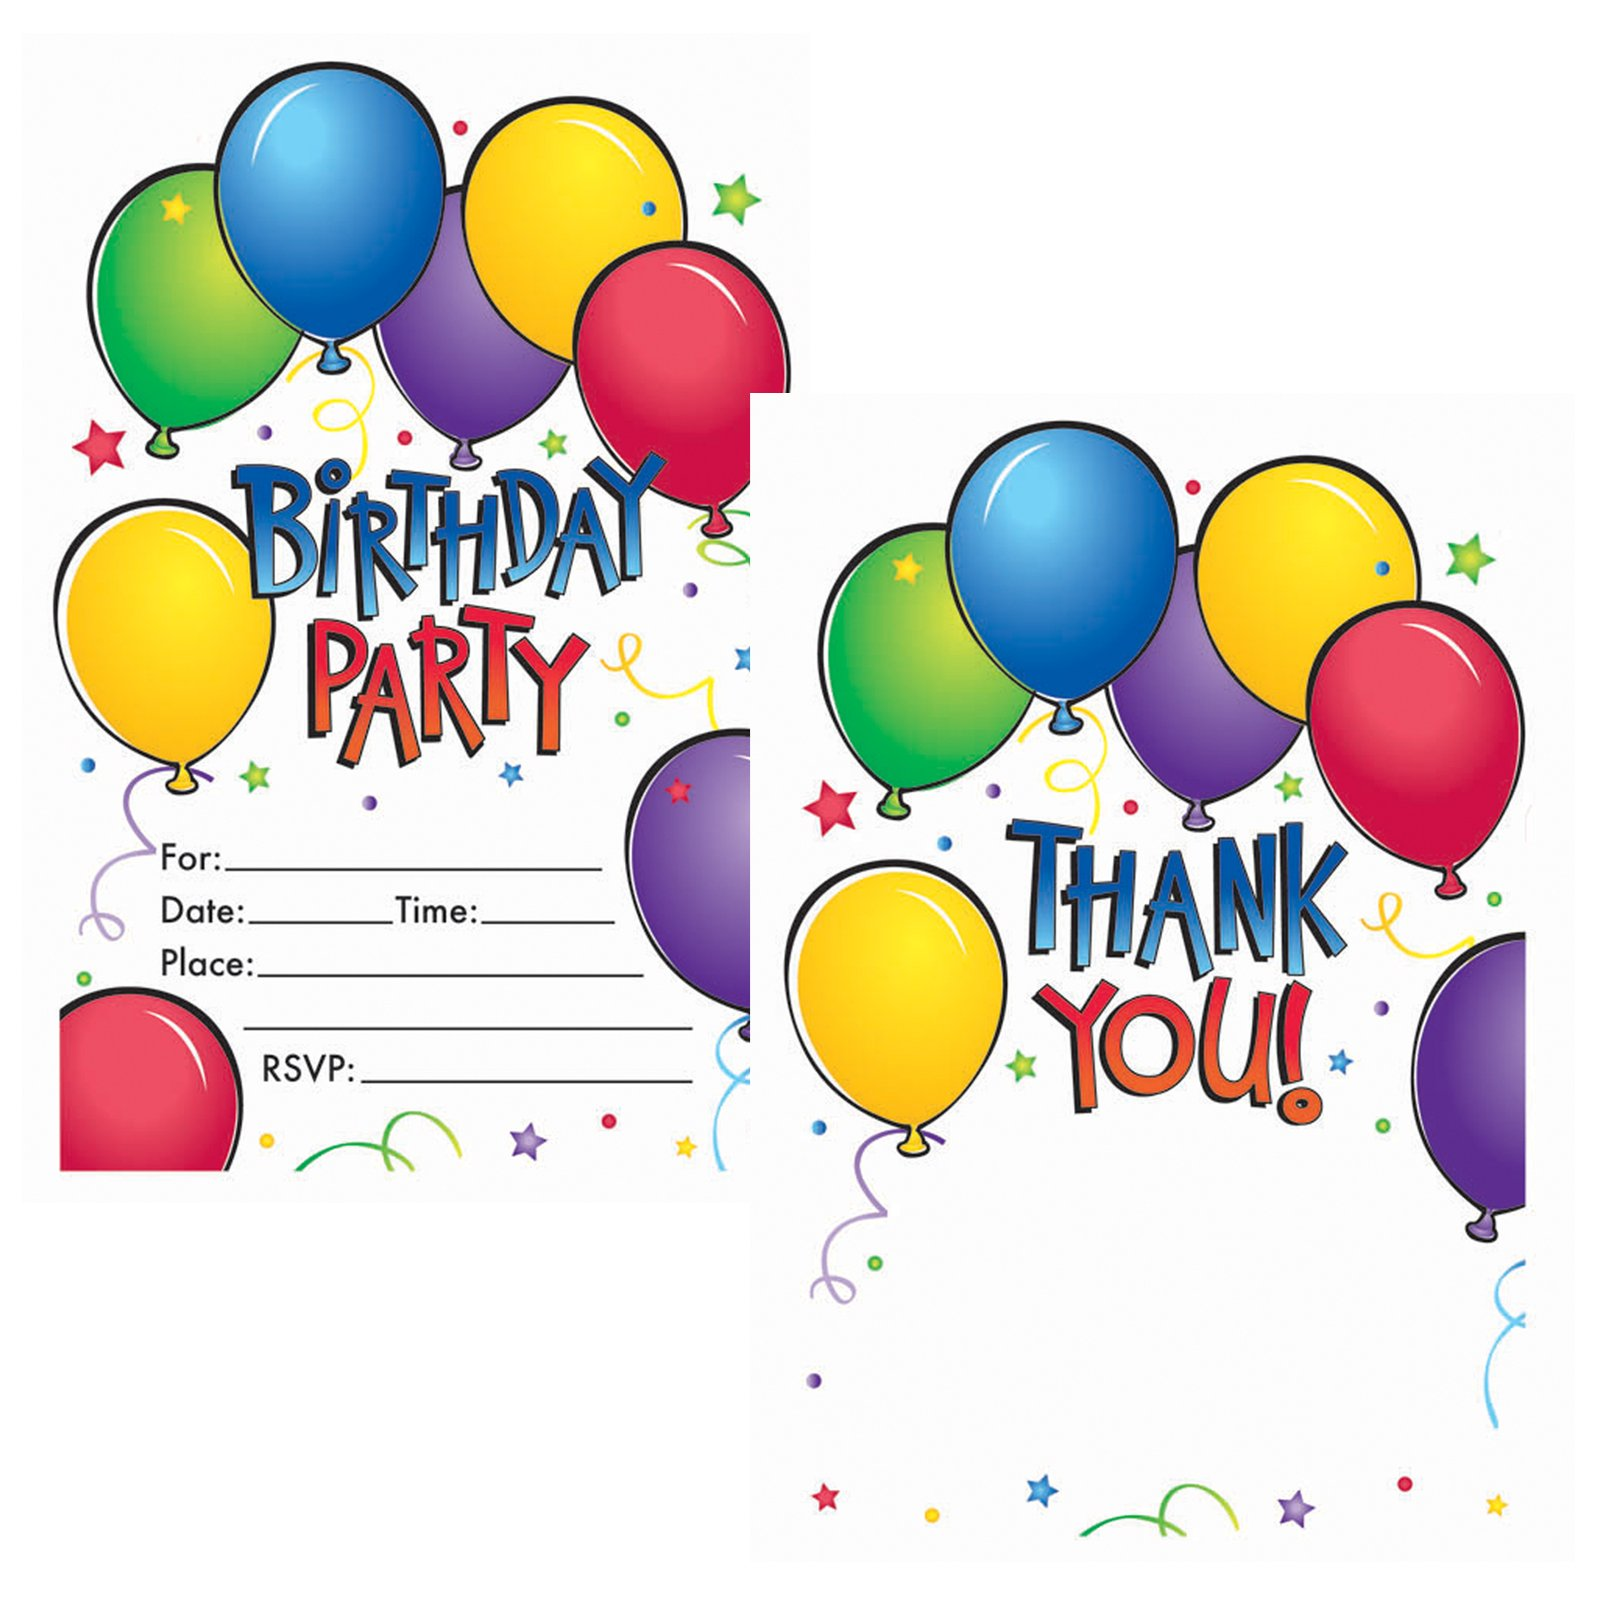 Balloon Fun Invitations and Thank You Postcards (50 count)